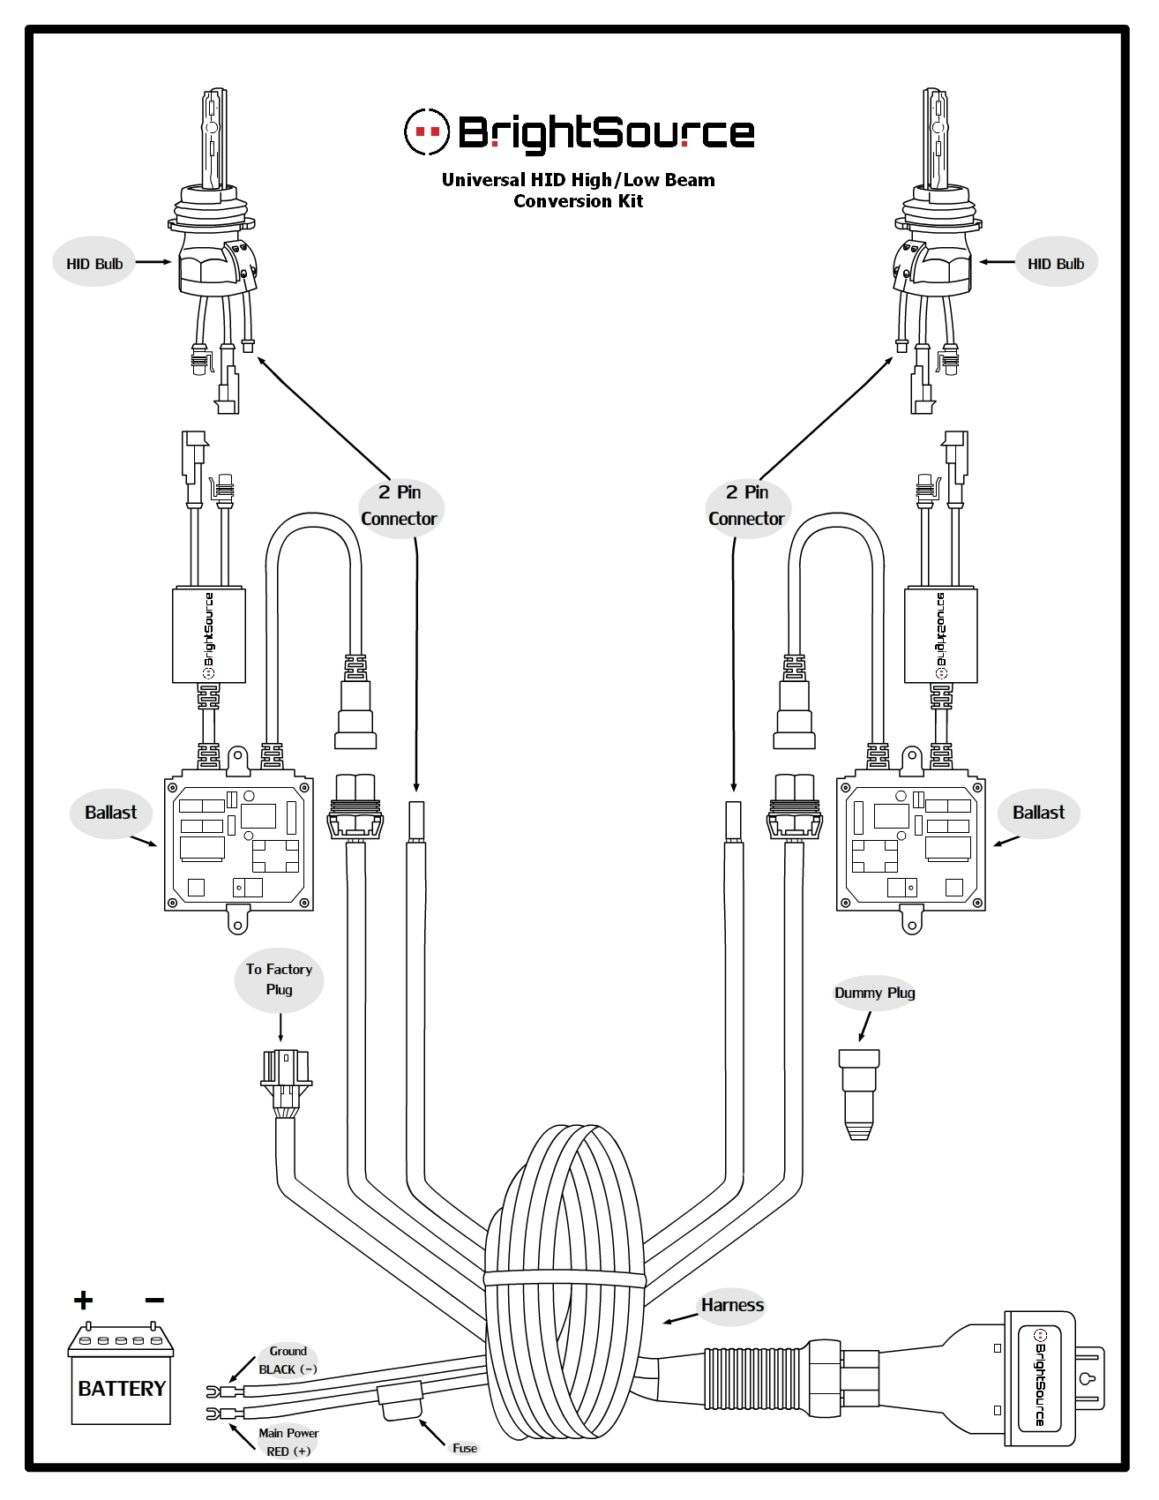 Ford Relay Wiring Diagram For Hid Headlights. Ford. Auto